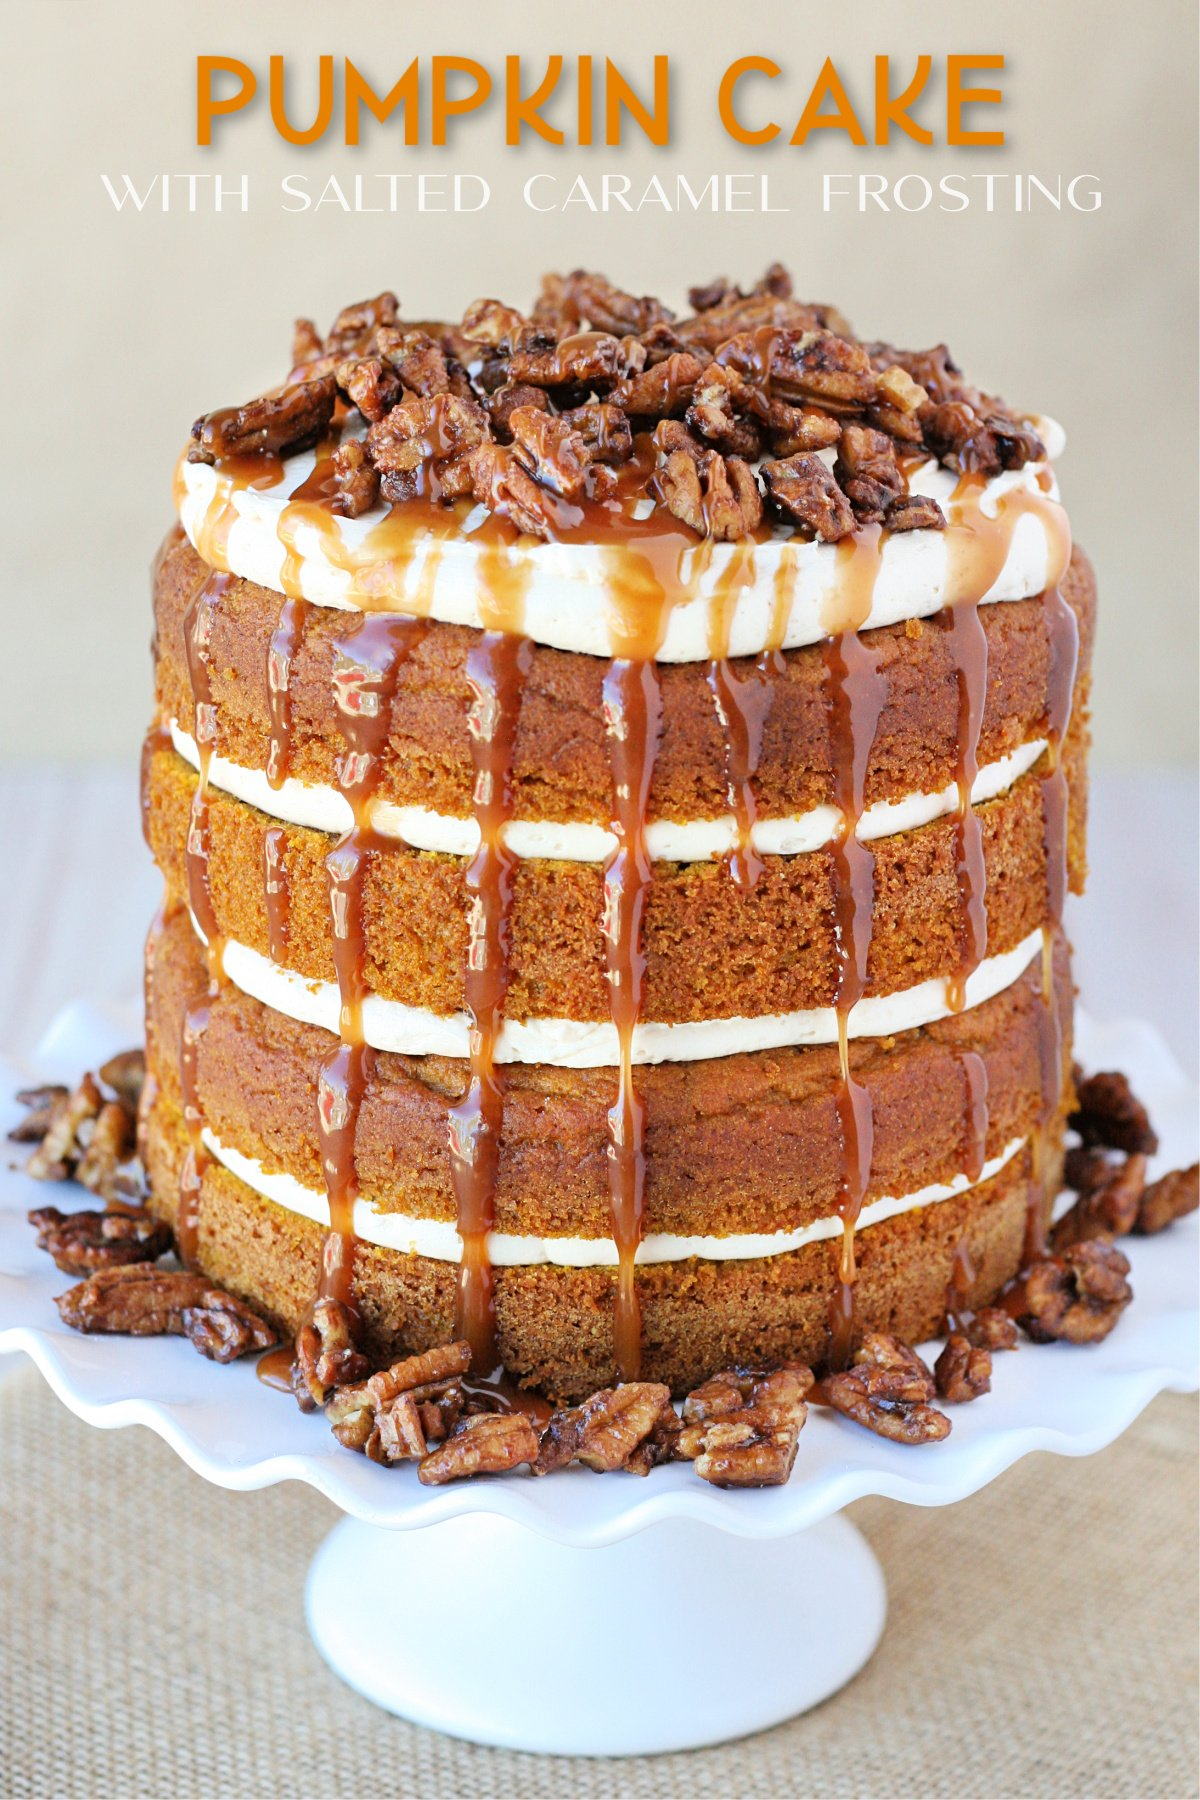 pumpkin layer cake on white cake stand with salted caramel frosting and sauce dripping from the top and covered with candied pecans text overlay at top